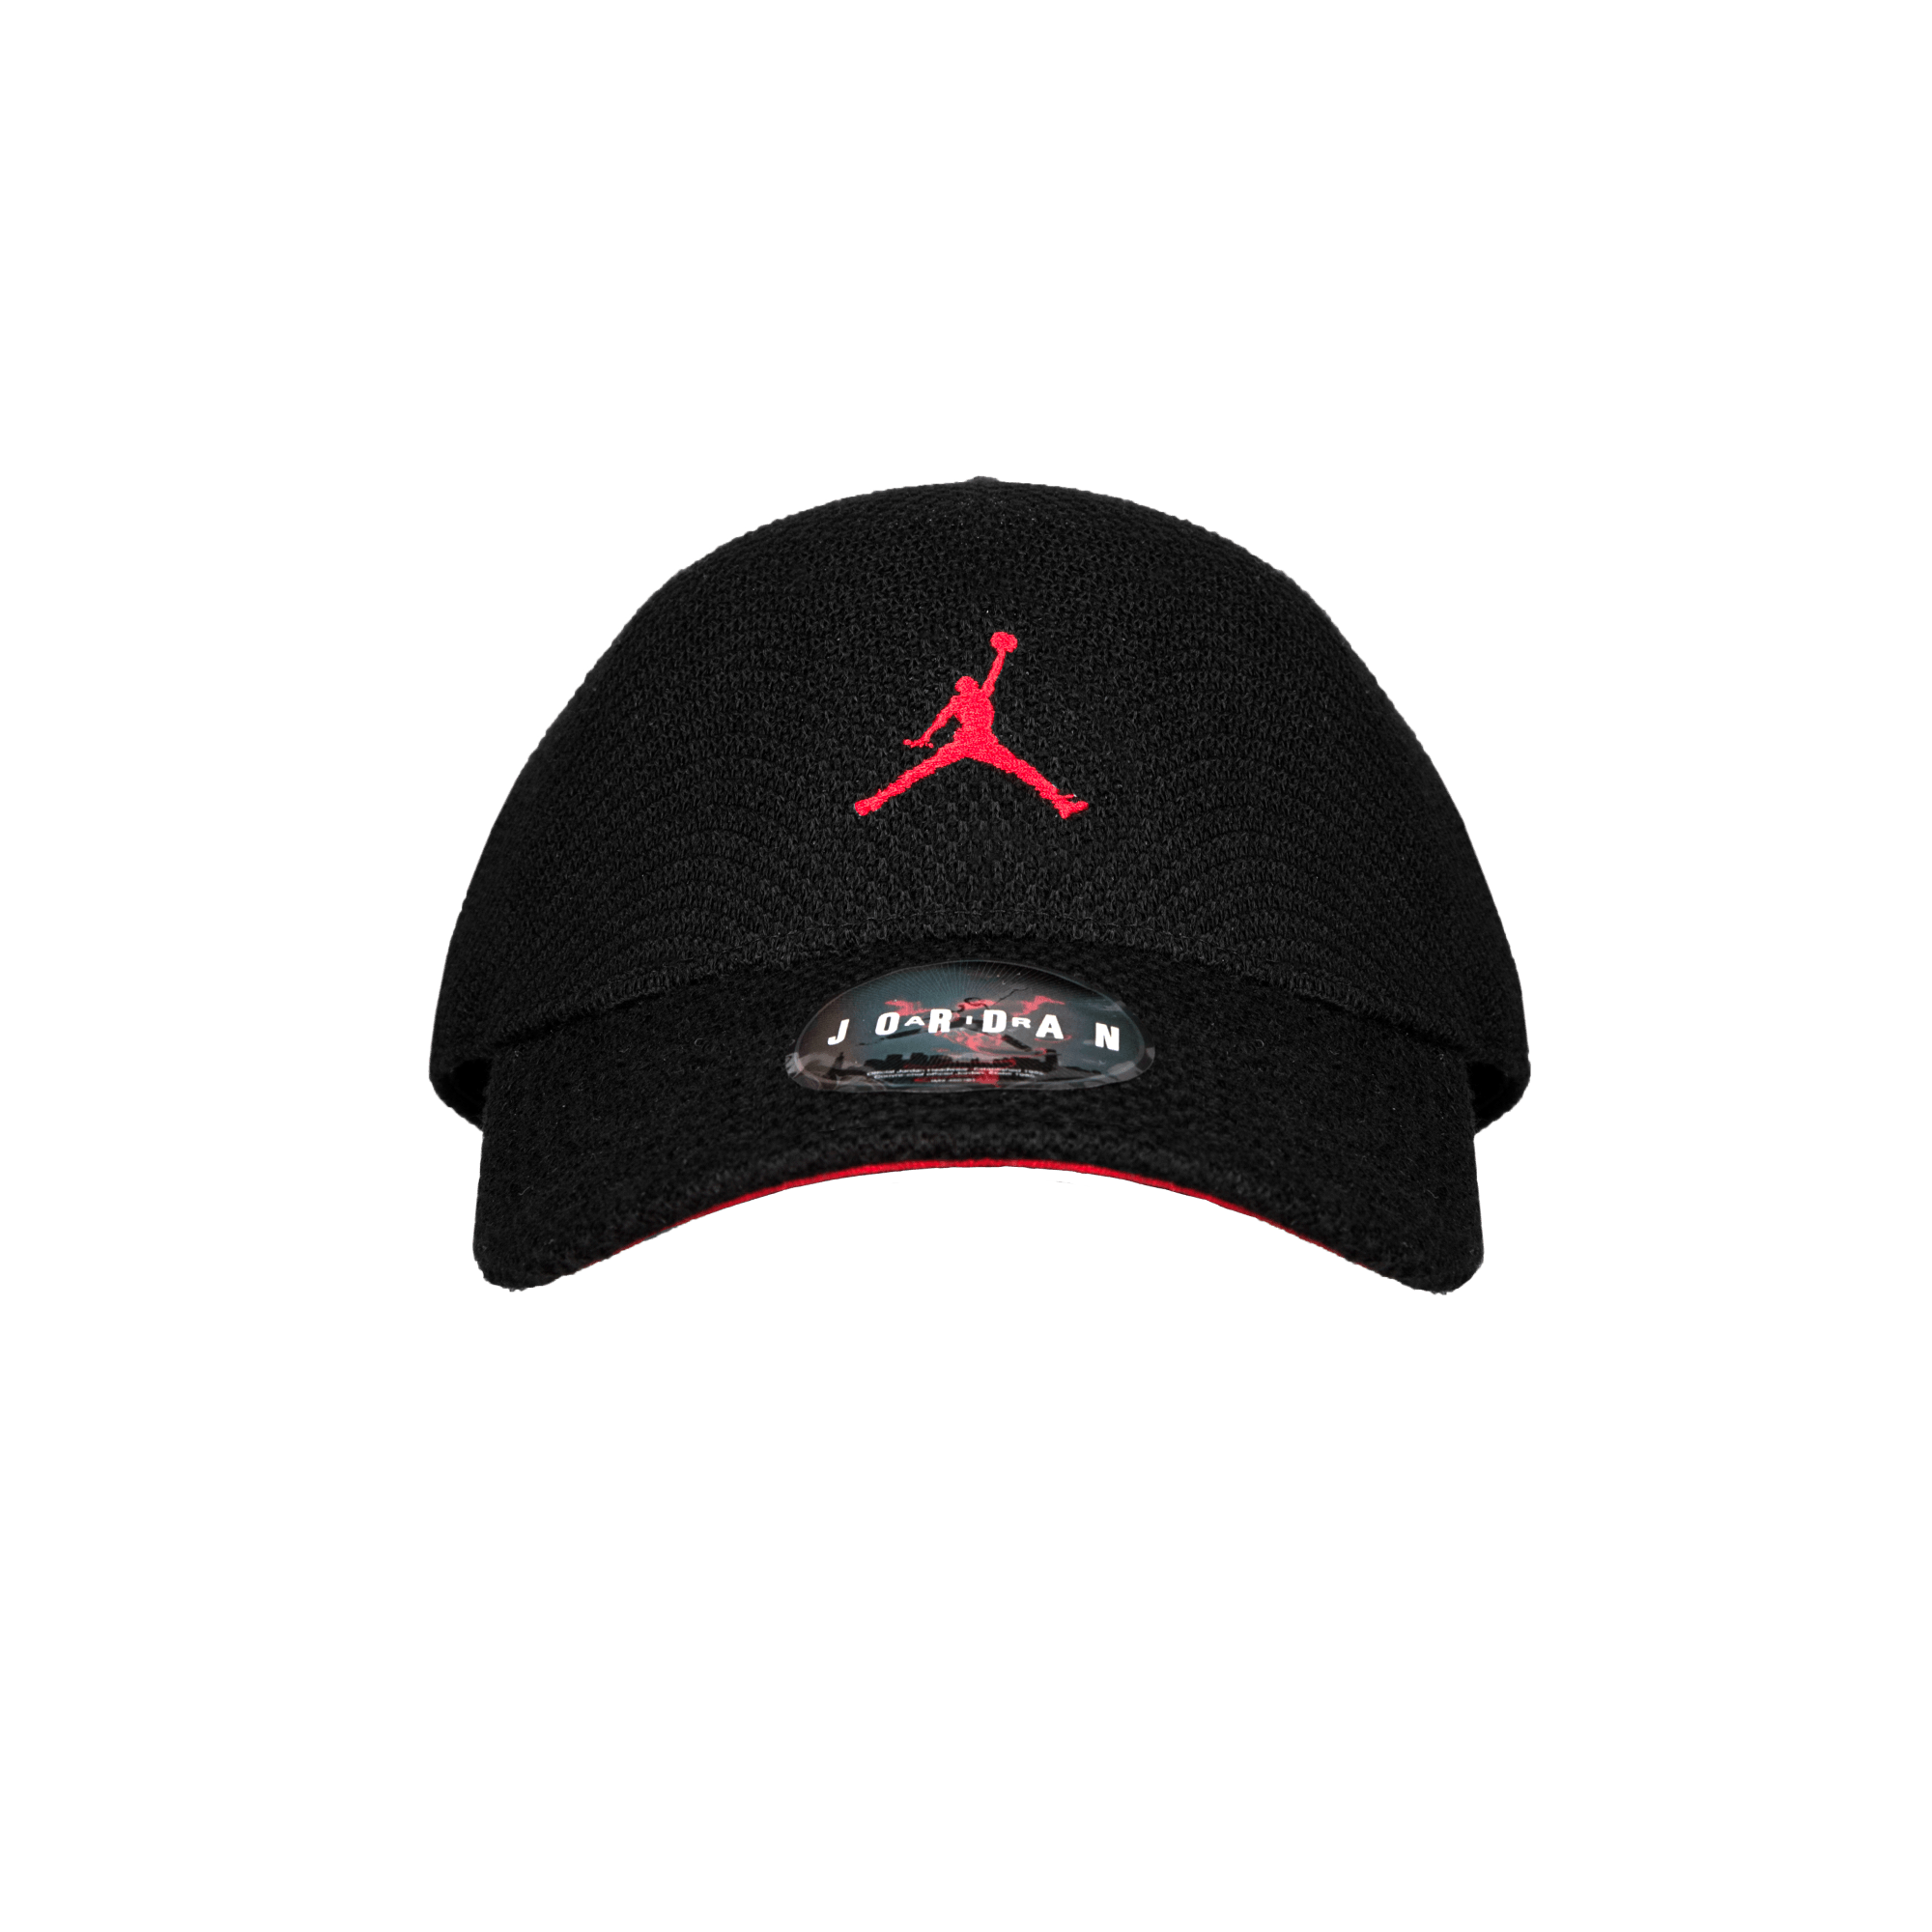 1574b60c06a ... jordan c0219 de198  wholesale jumpman knit flex cap black red 3838f  6af6a